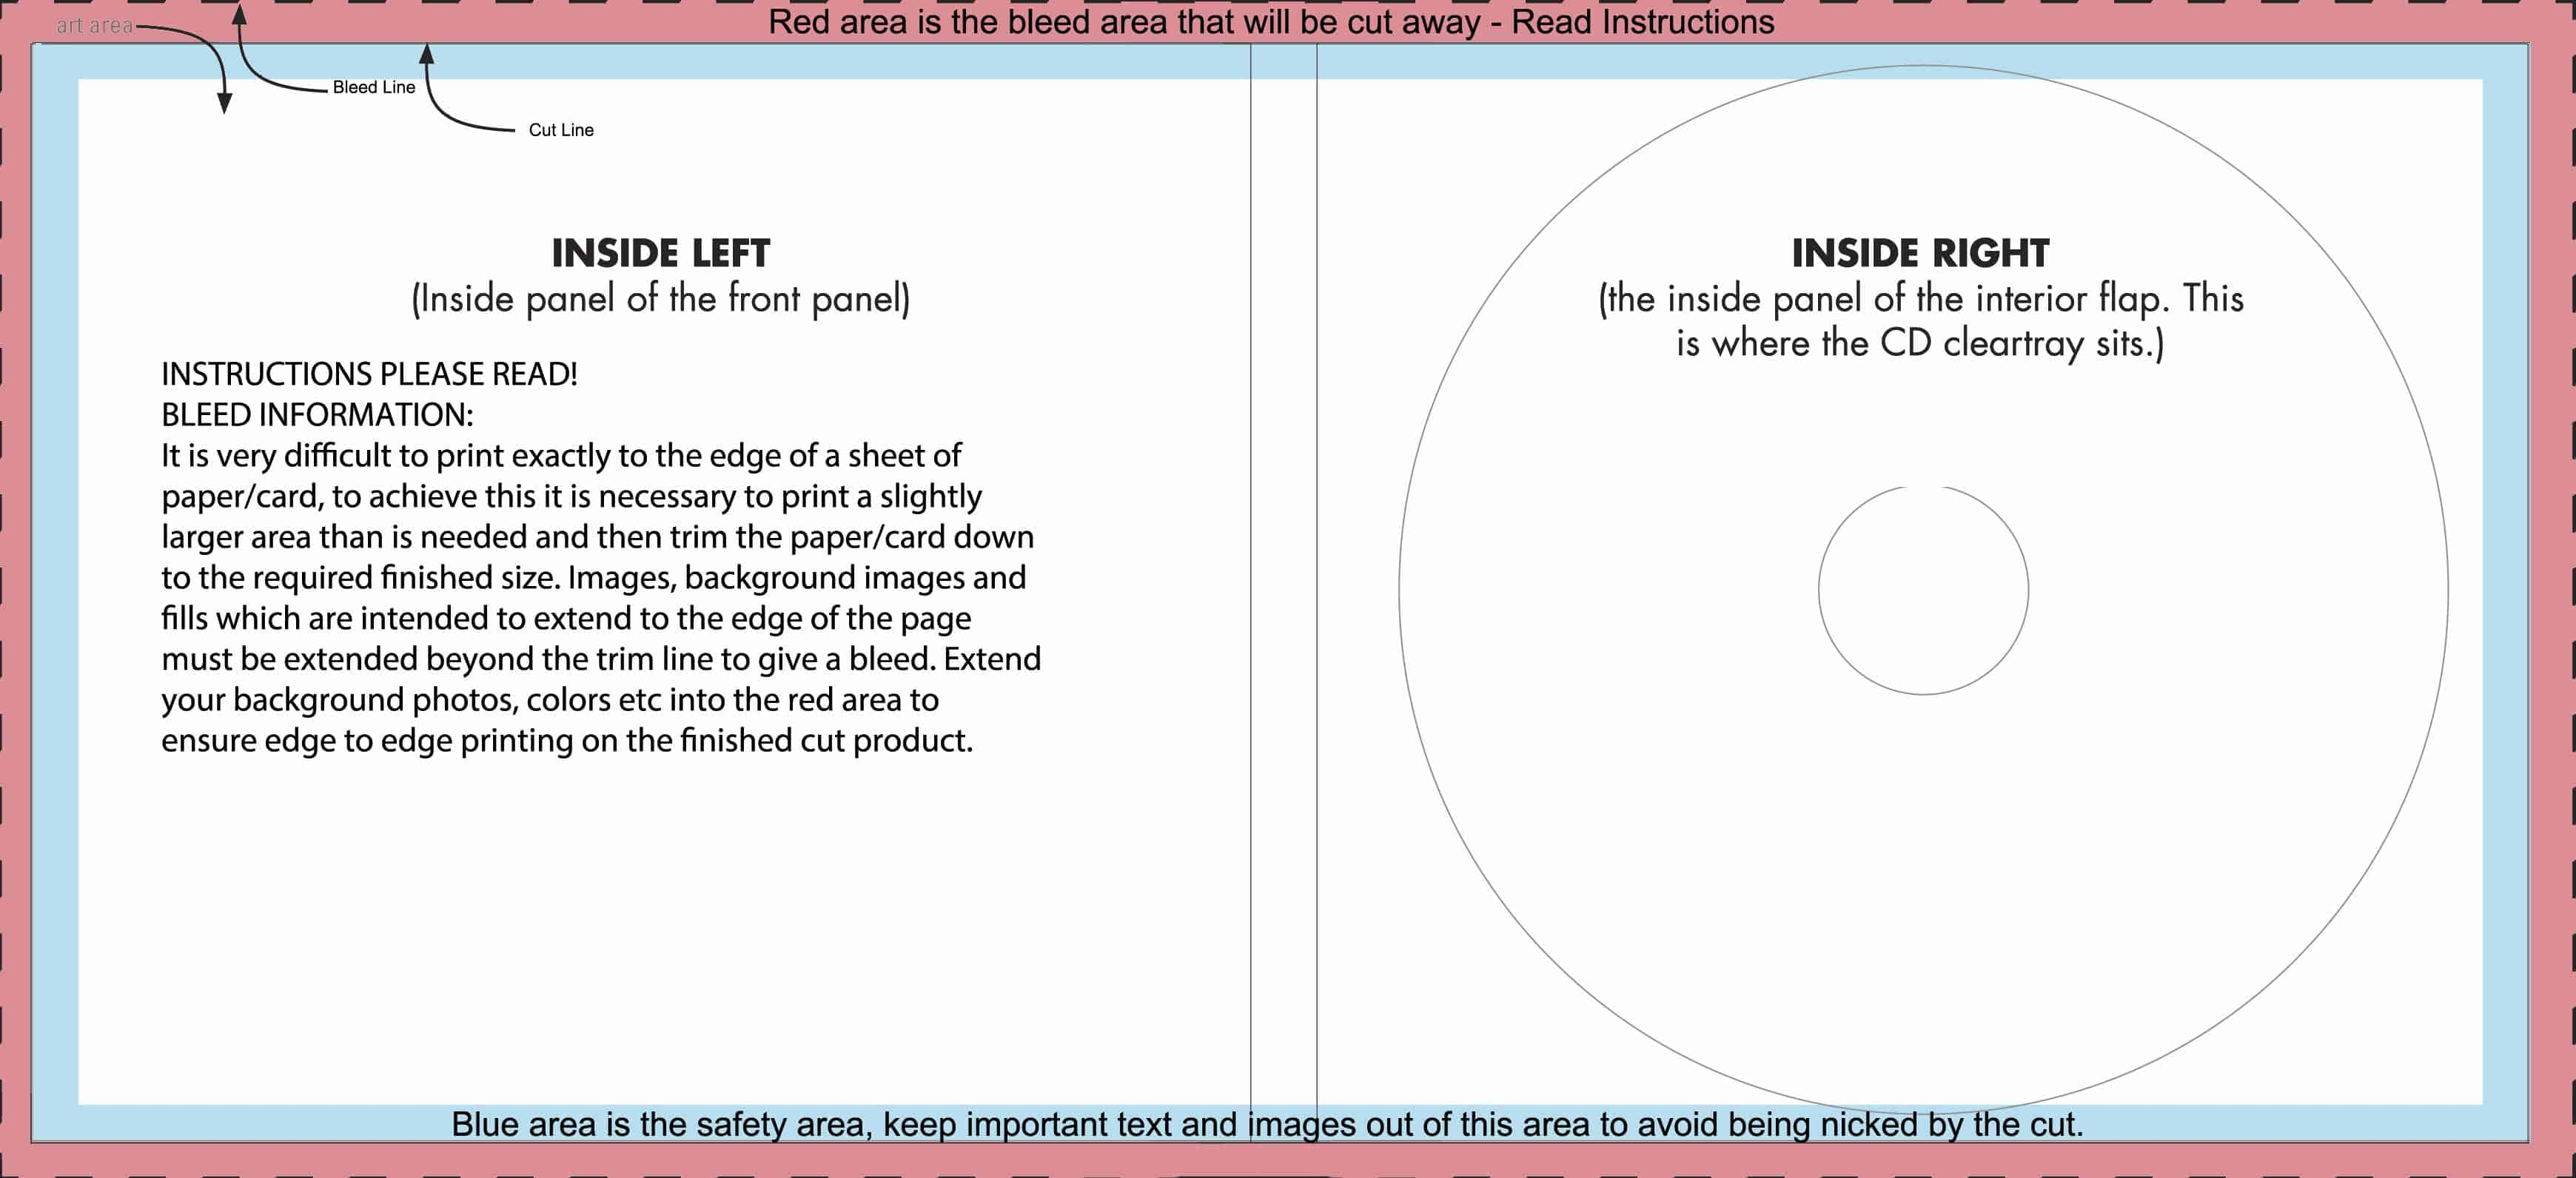 Amazing 10 Best Resume Writers Small 10 Steps To Writing A Resume Flat 100 Square Pool Template 100th Day Hat Template Old 1099 Pay Stub Template Black1099 Template Word Templates For Disc Packaging | ELS Productions